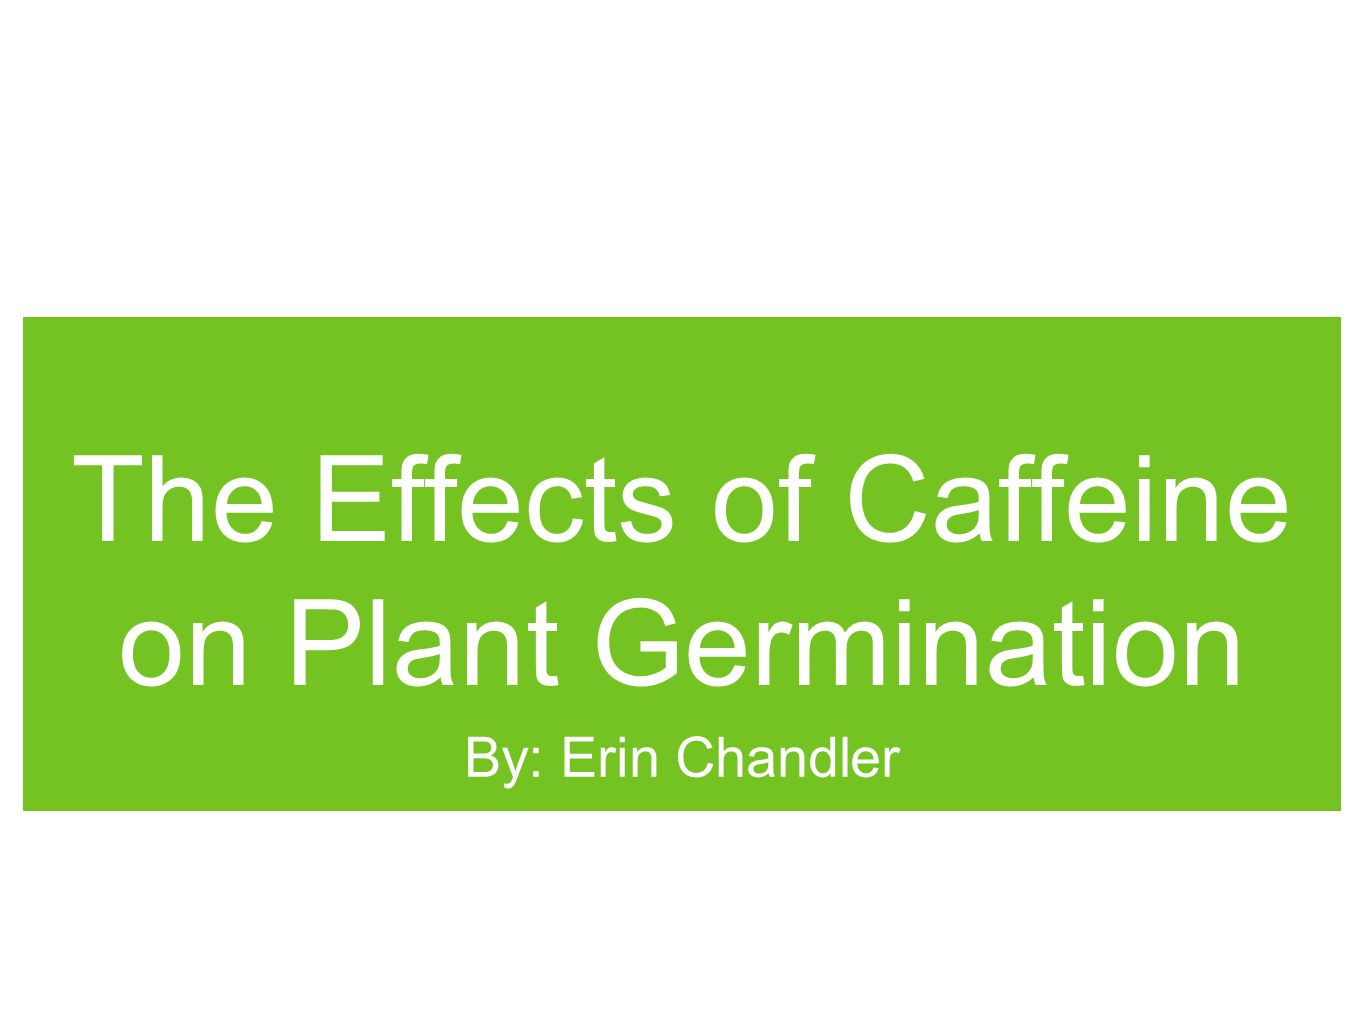 The Effects of Caffeine on Plant Germination By: Erin Chandler